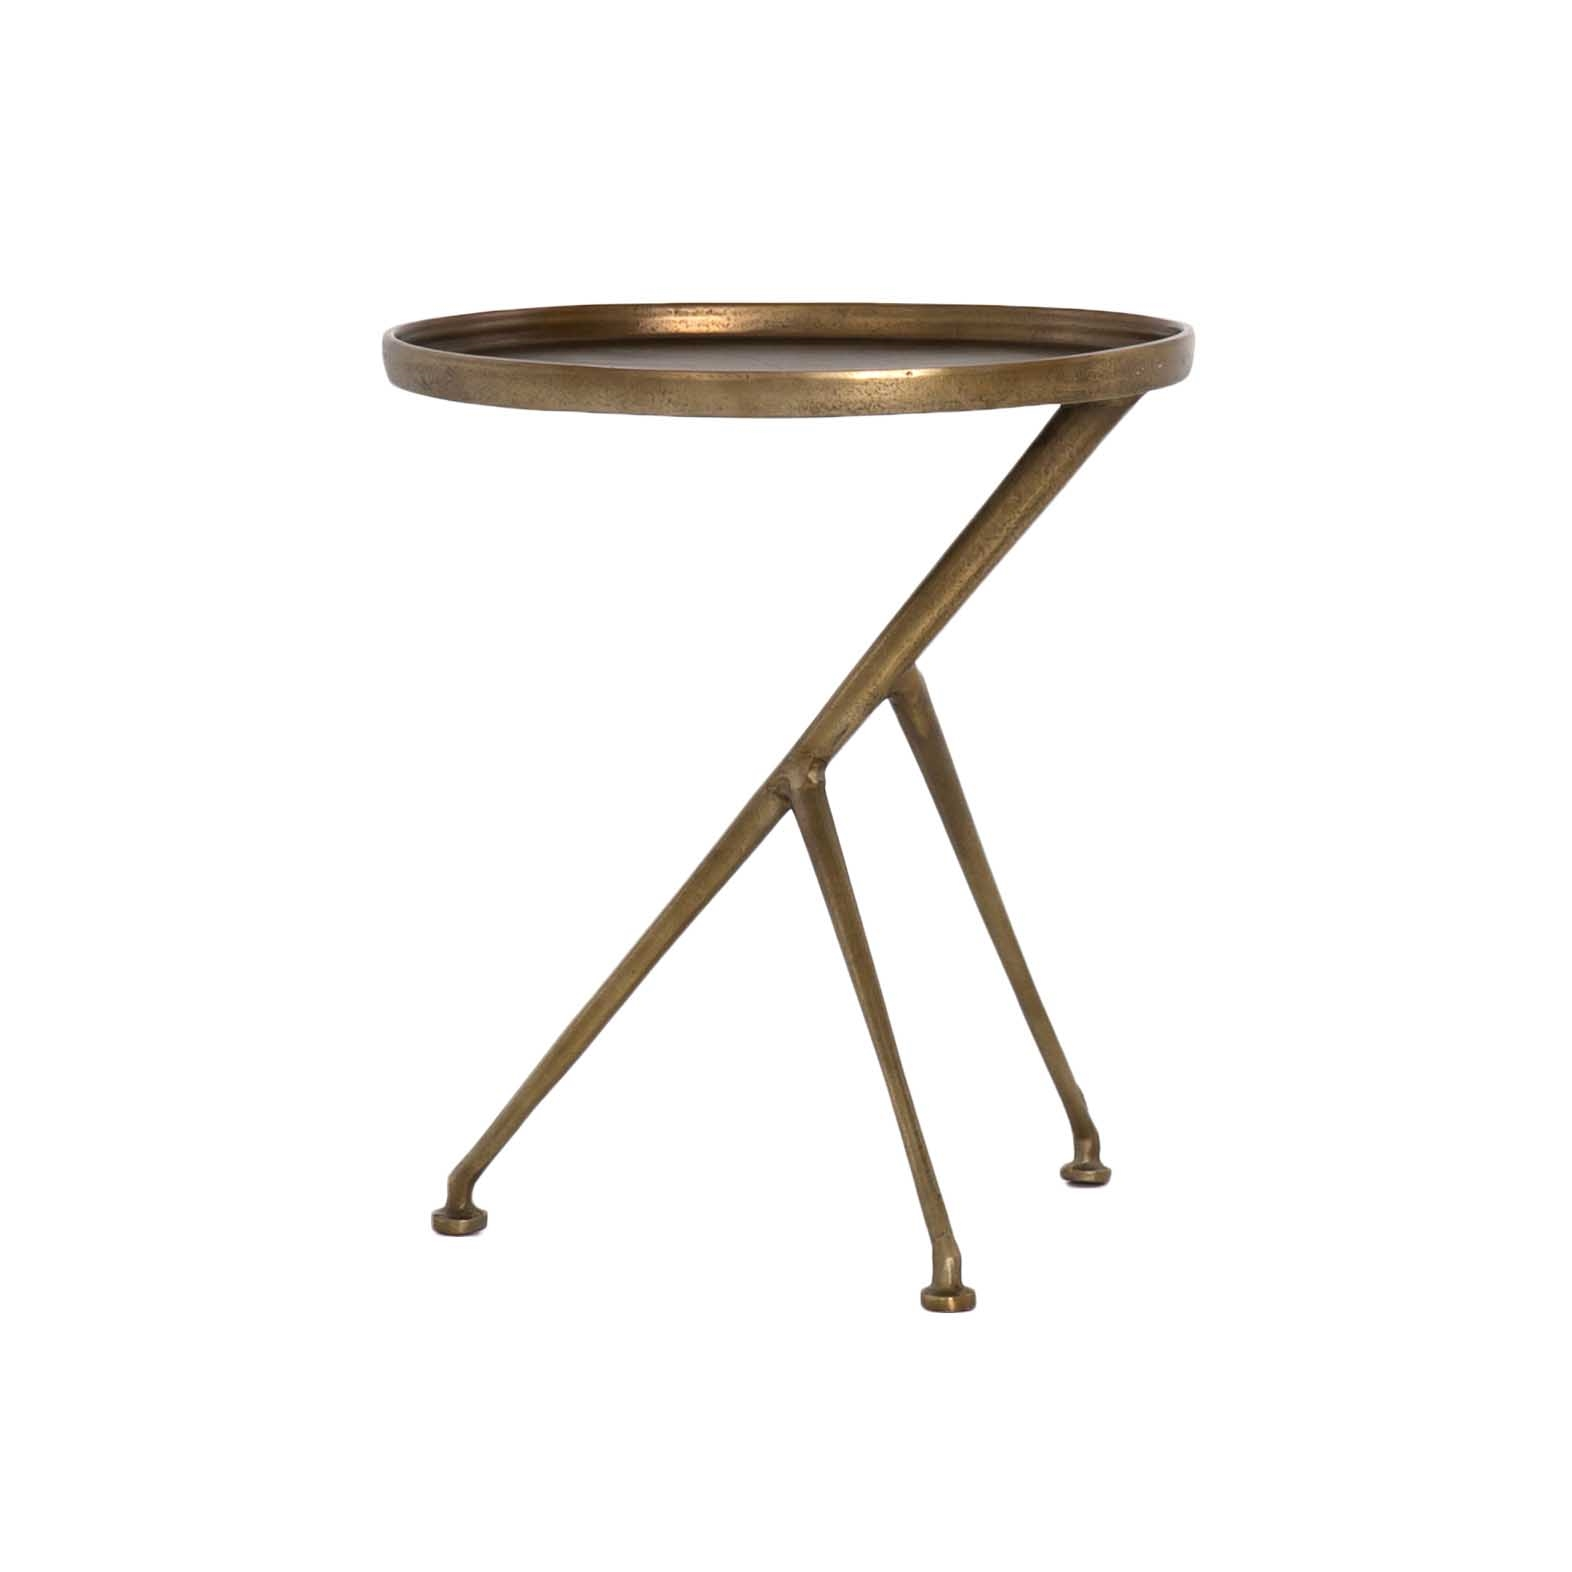 schmidt accent table raw brass the khazana furniture imar rbs wood marlow black ginger jar lamp clip desk structube coffee small rectangular side metal lamps contemporary tiffany